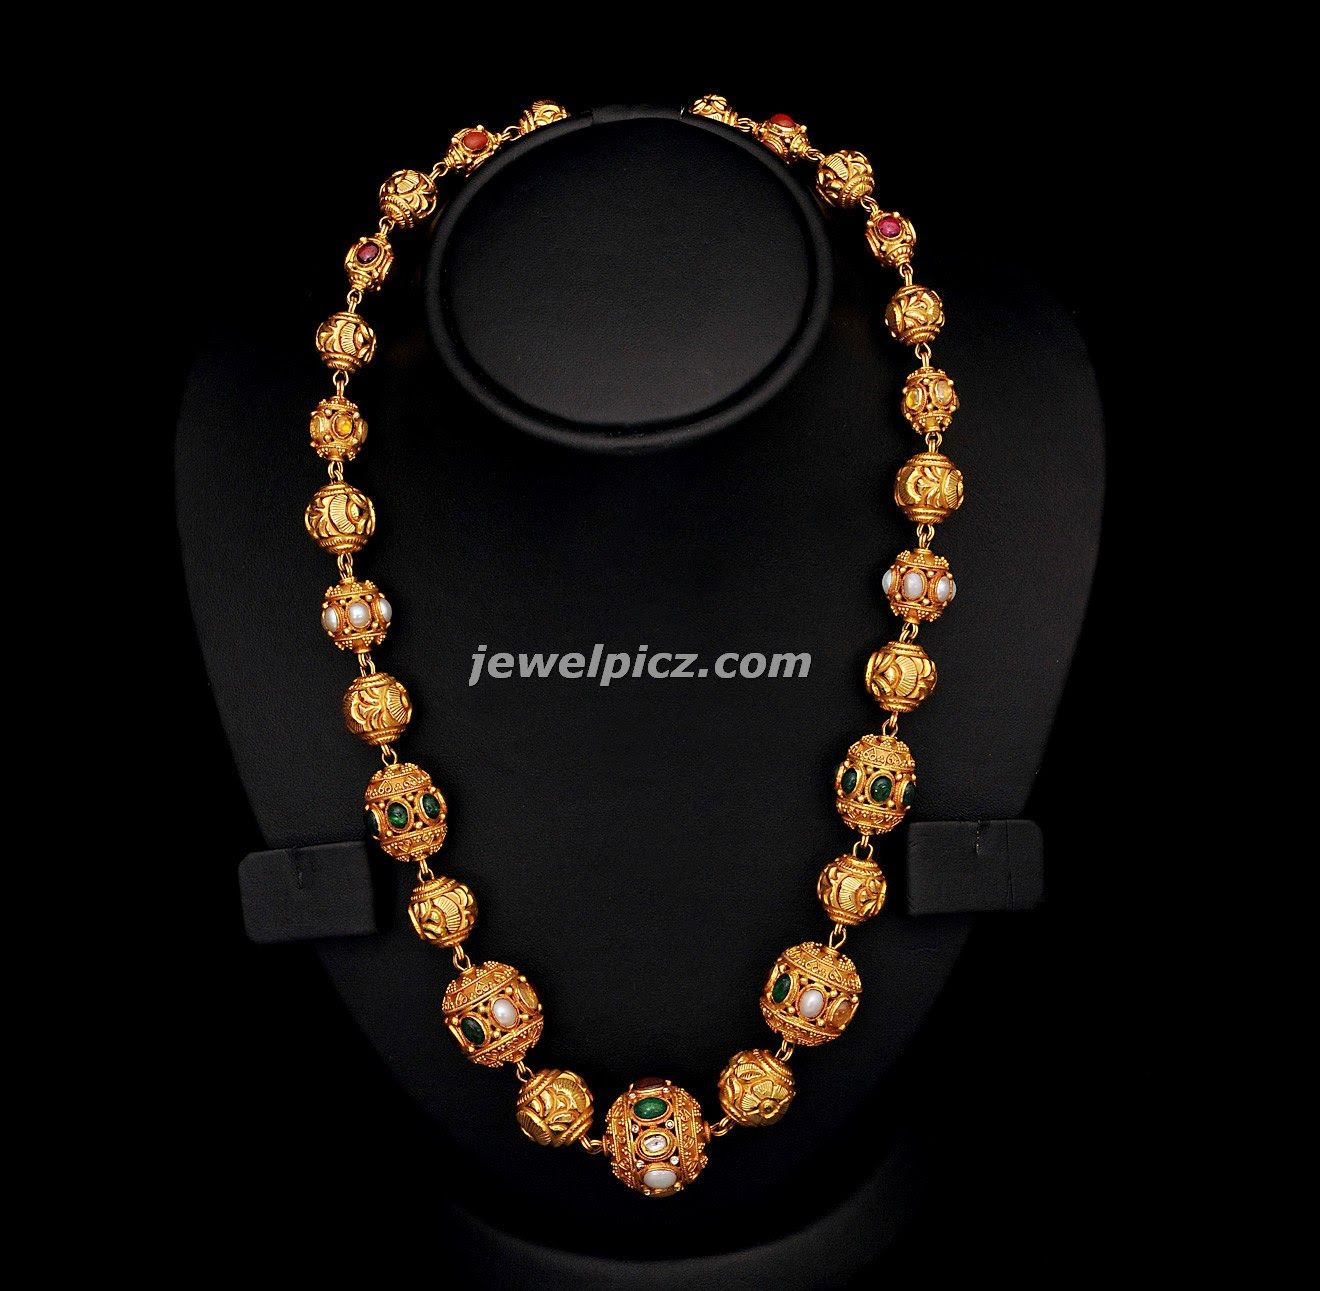 Diamond bangles latest jewelry designs jewellery designs - An Exclusive Designer Jewelry Blog Celebrity Jewelry Gold Diamond Necklace Latest Designs Bangles